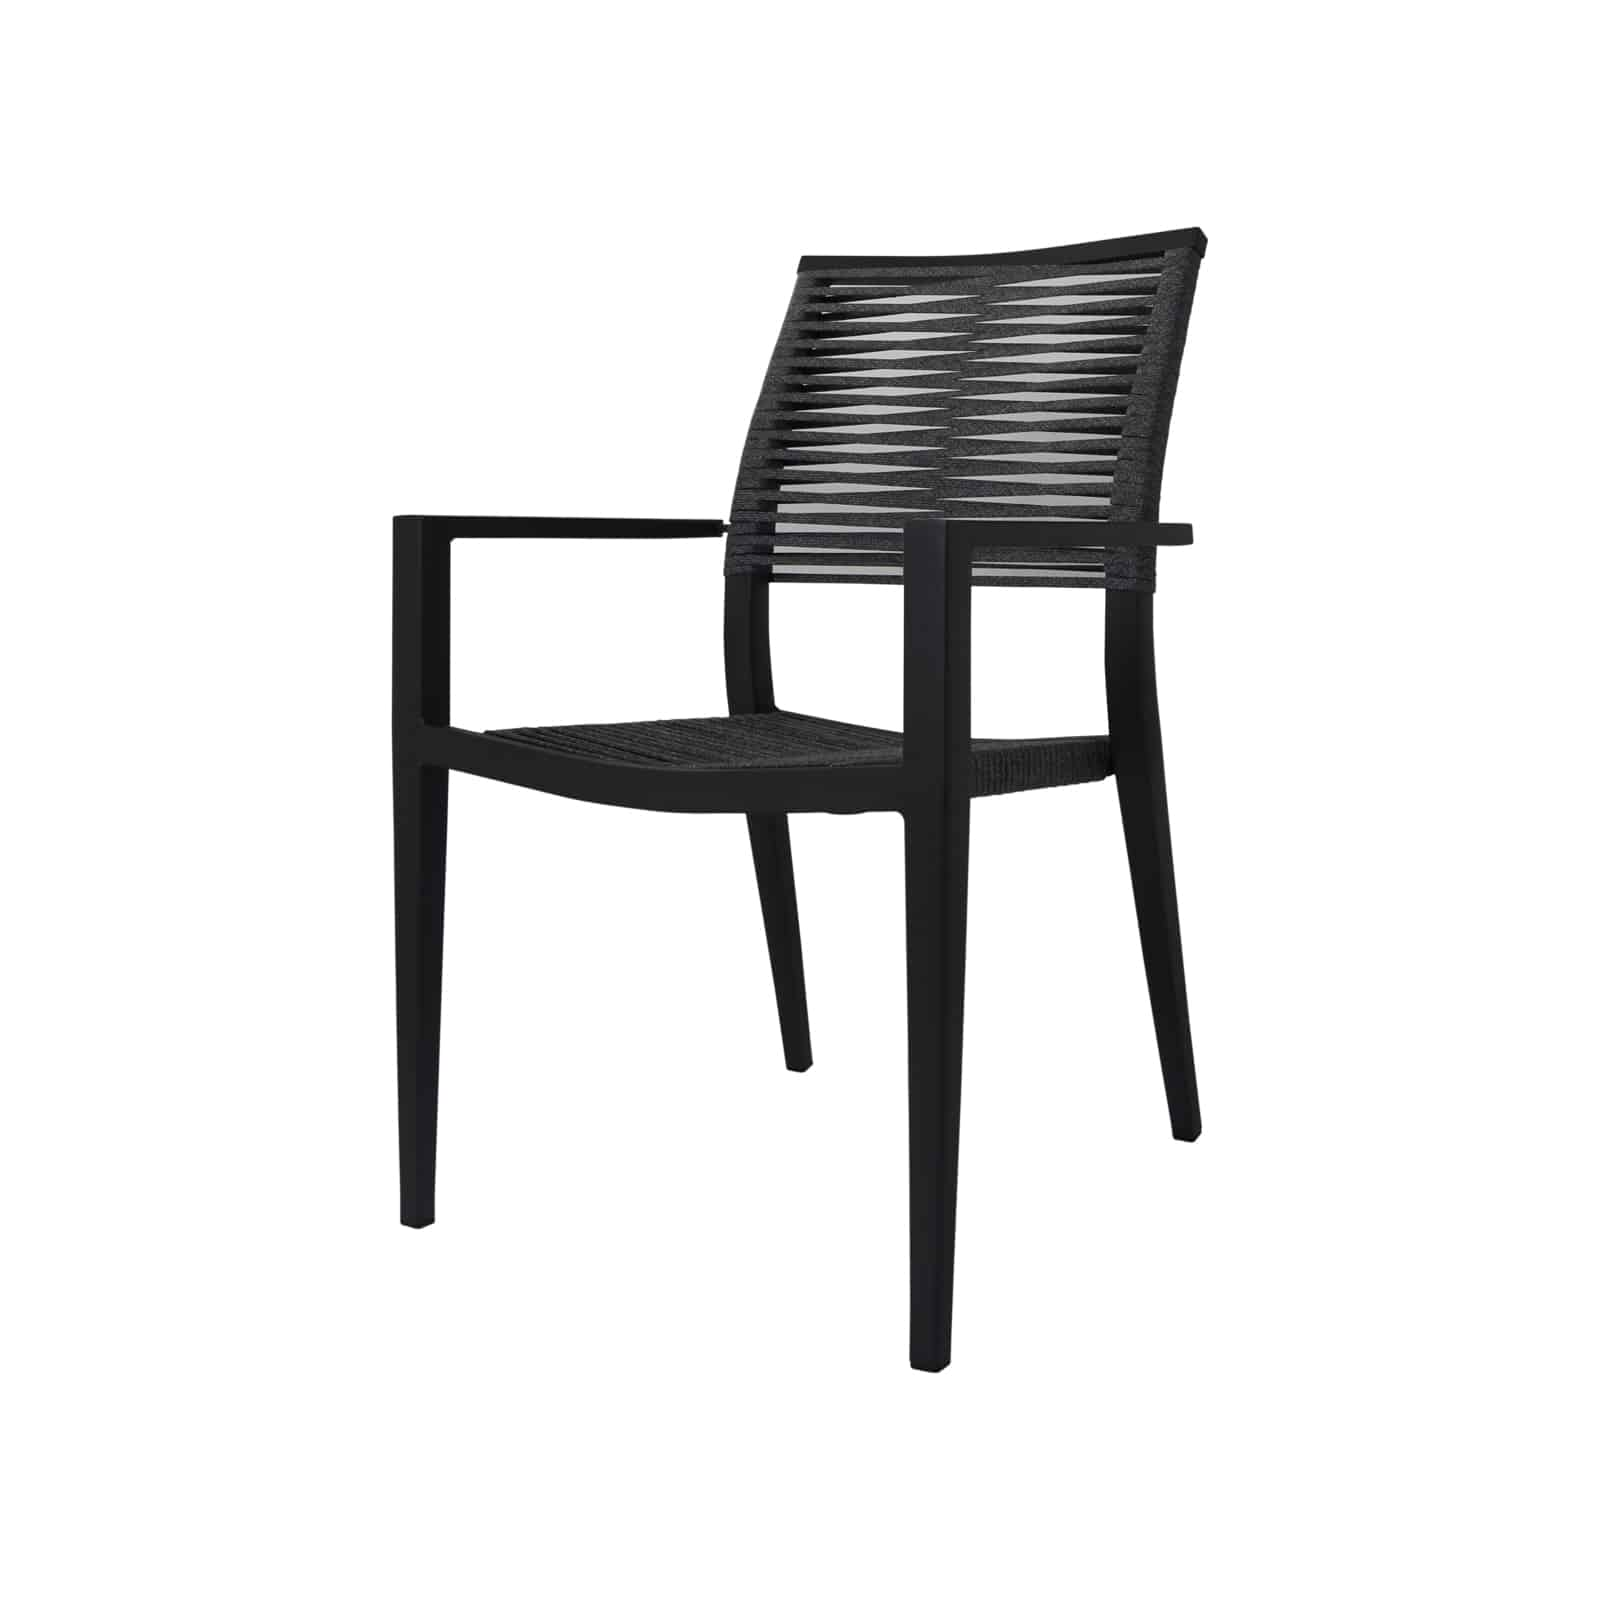 Source Furniture Source Furniture Chloe Rope Dining Arm Chair Dining Arm Chair - Rattan Imports